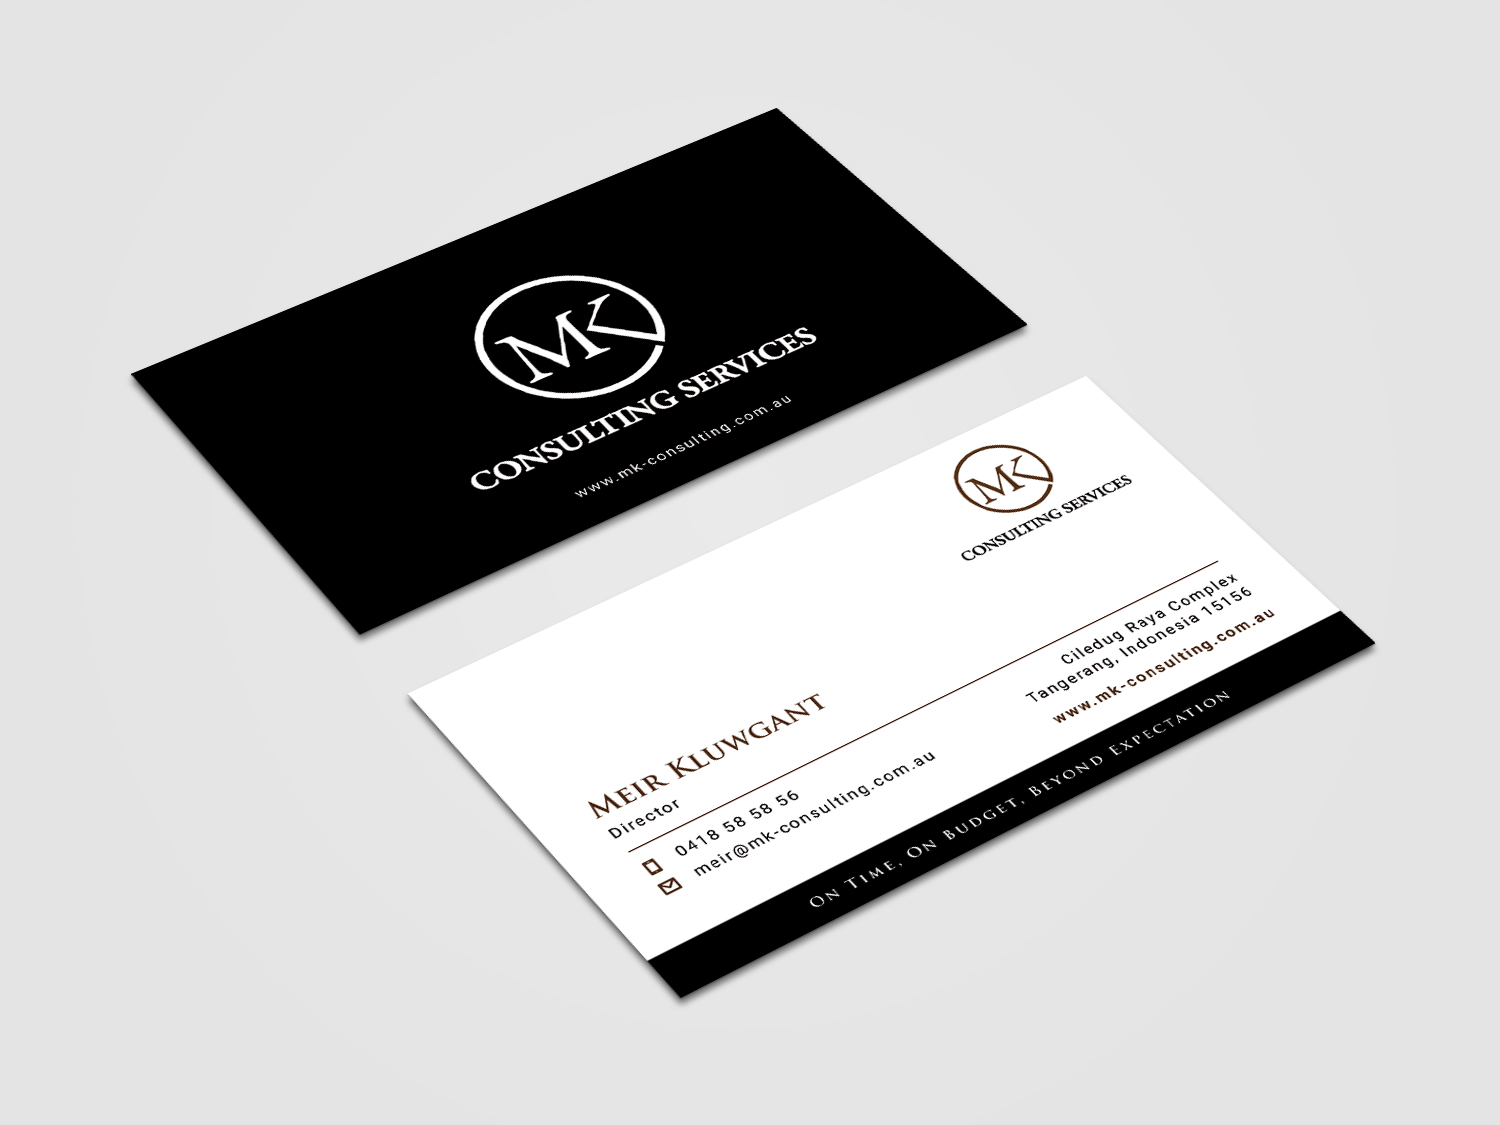 Serious professional consulting business card design for msk business card design by alvinfadoil for msk enterprises pl design 12378620 reheart Gallery